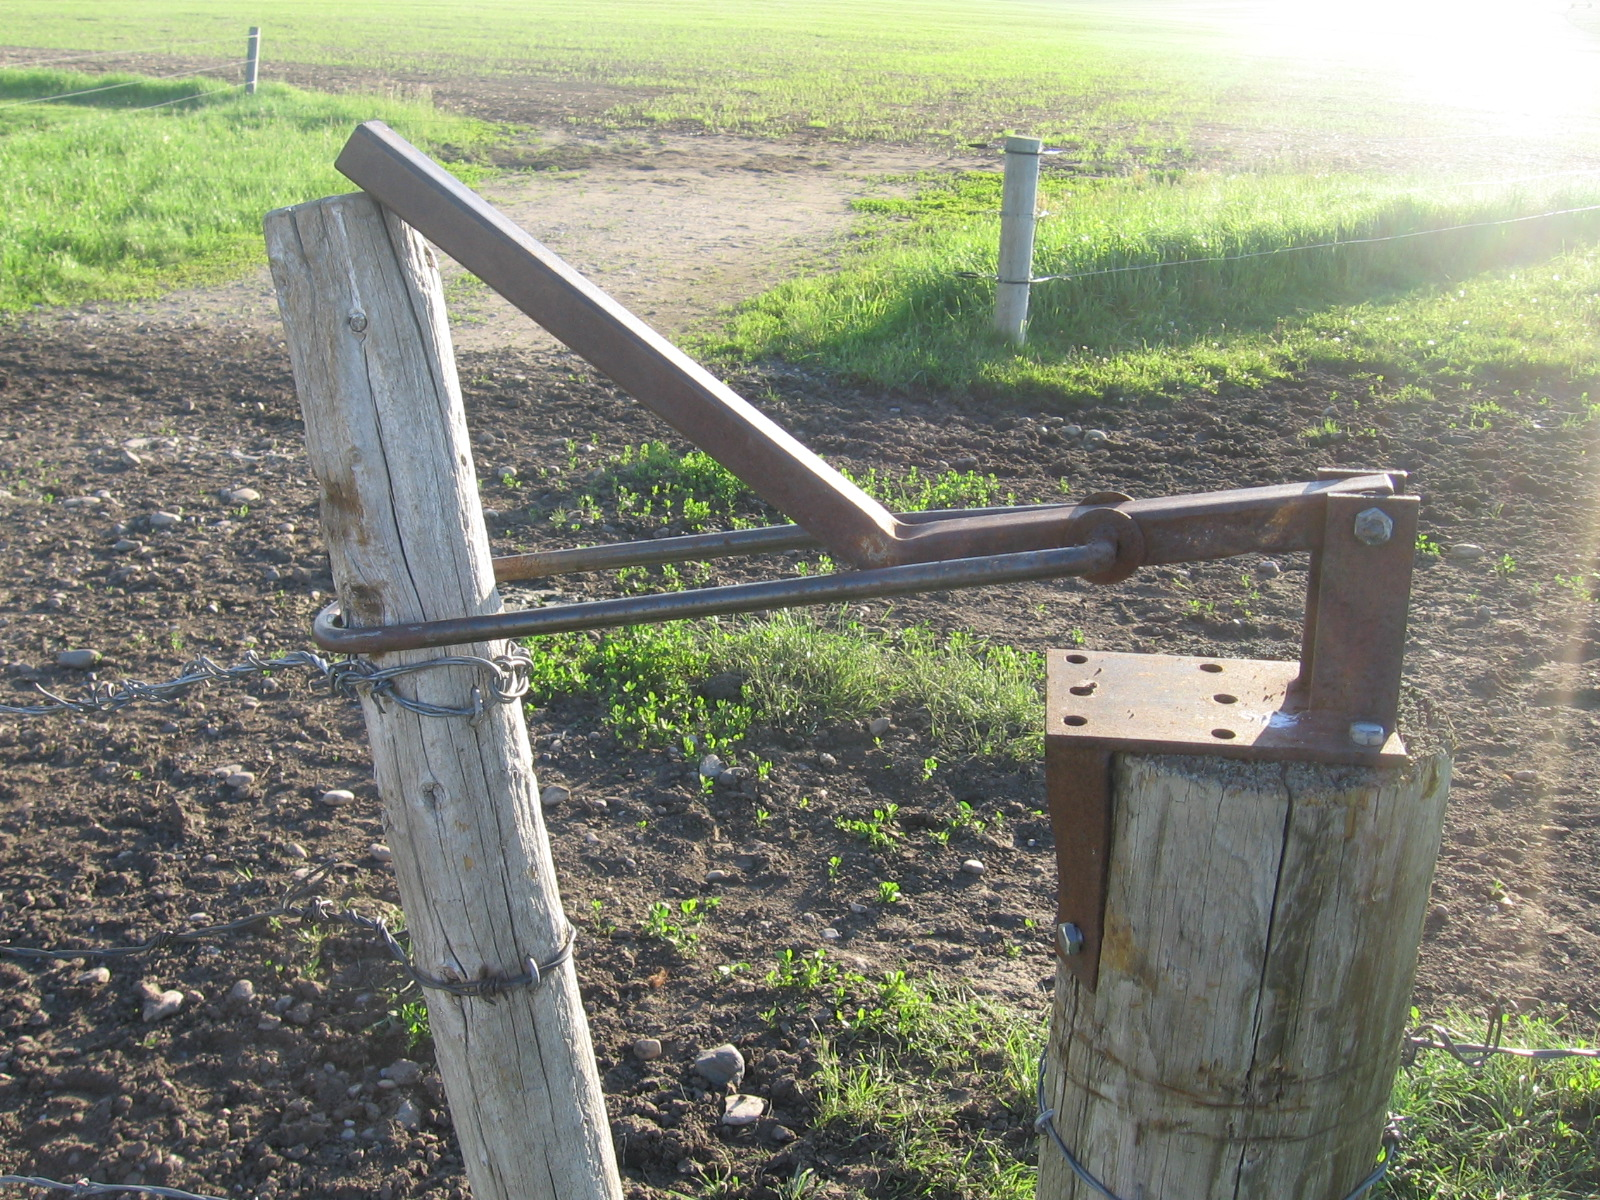 Farm Amp Ranch Gate Latch : Life in the ag industry invention monday gate latch